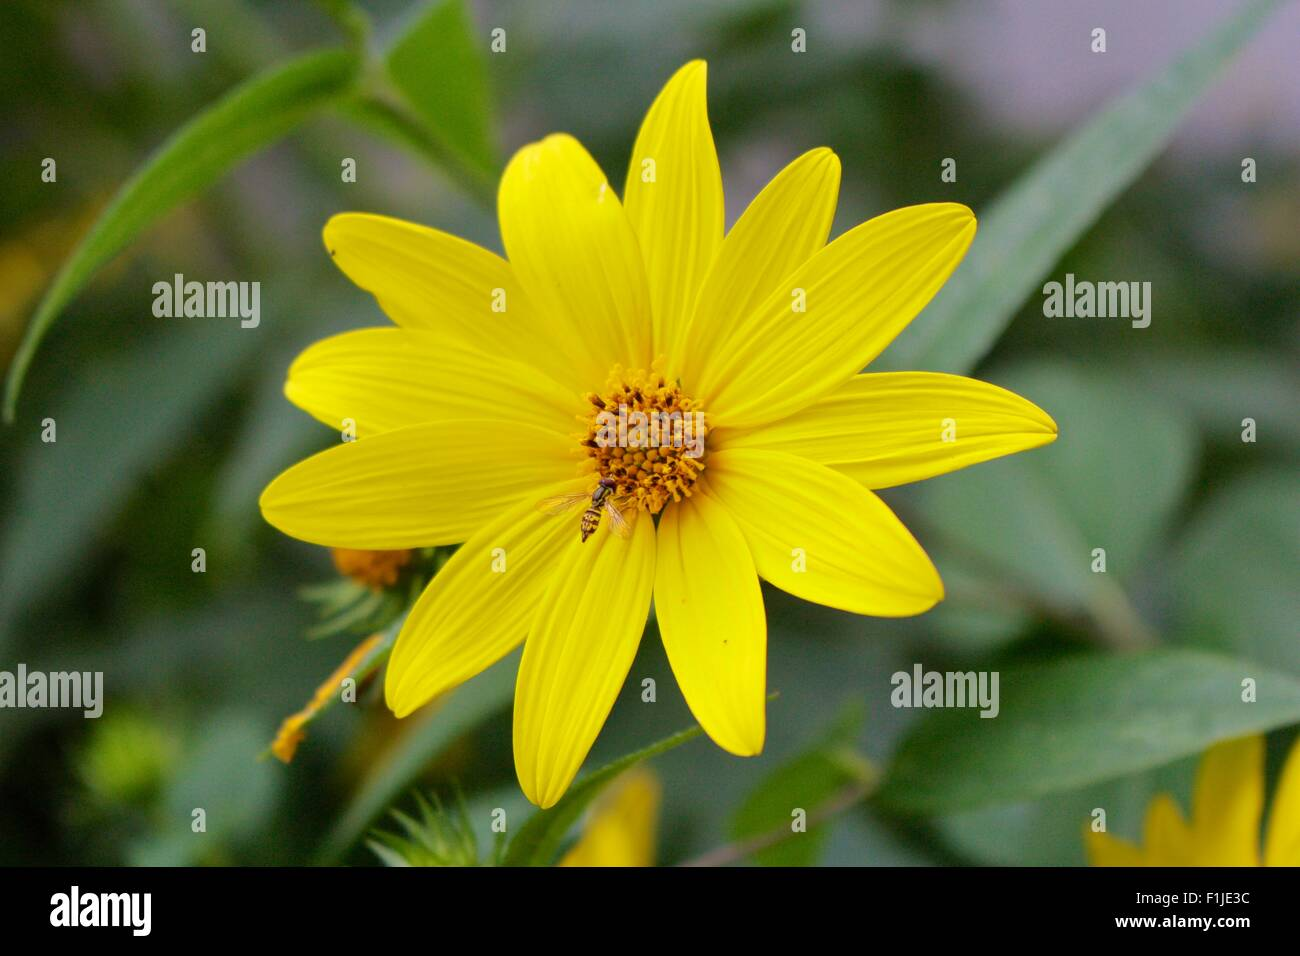 Woodland sunflower with hoverfly. - Stock Image